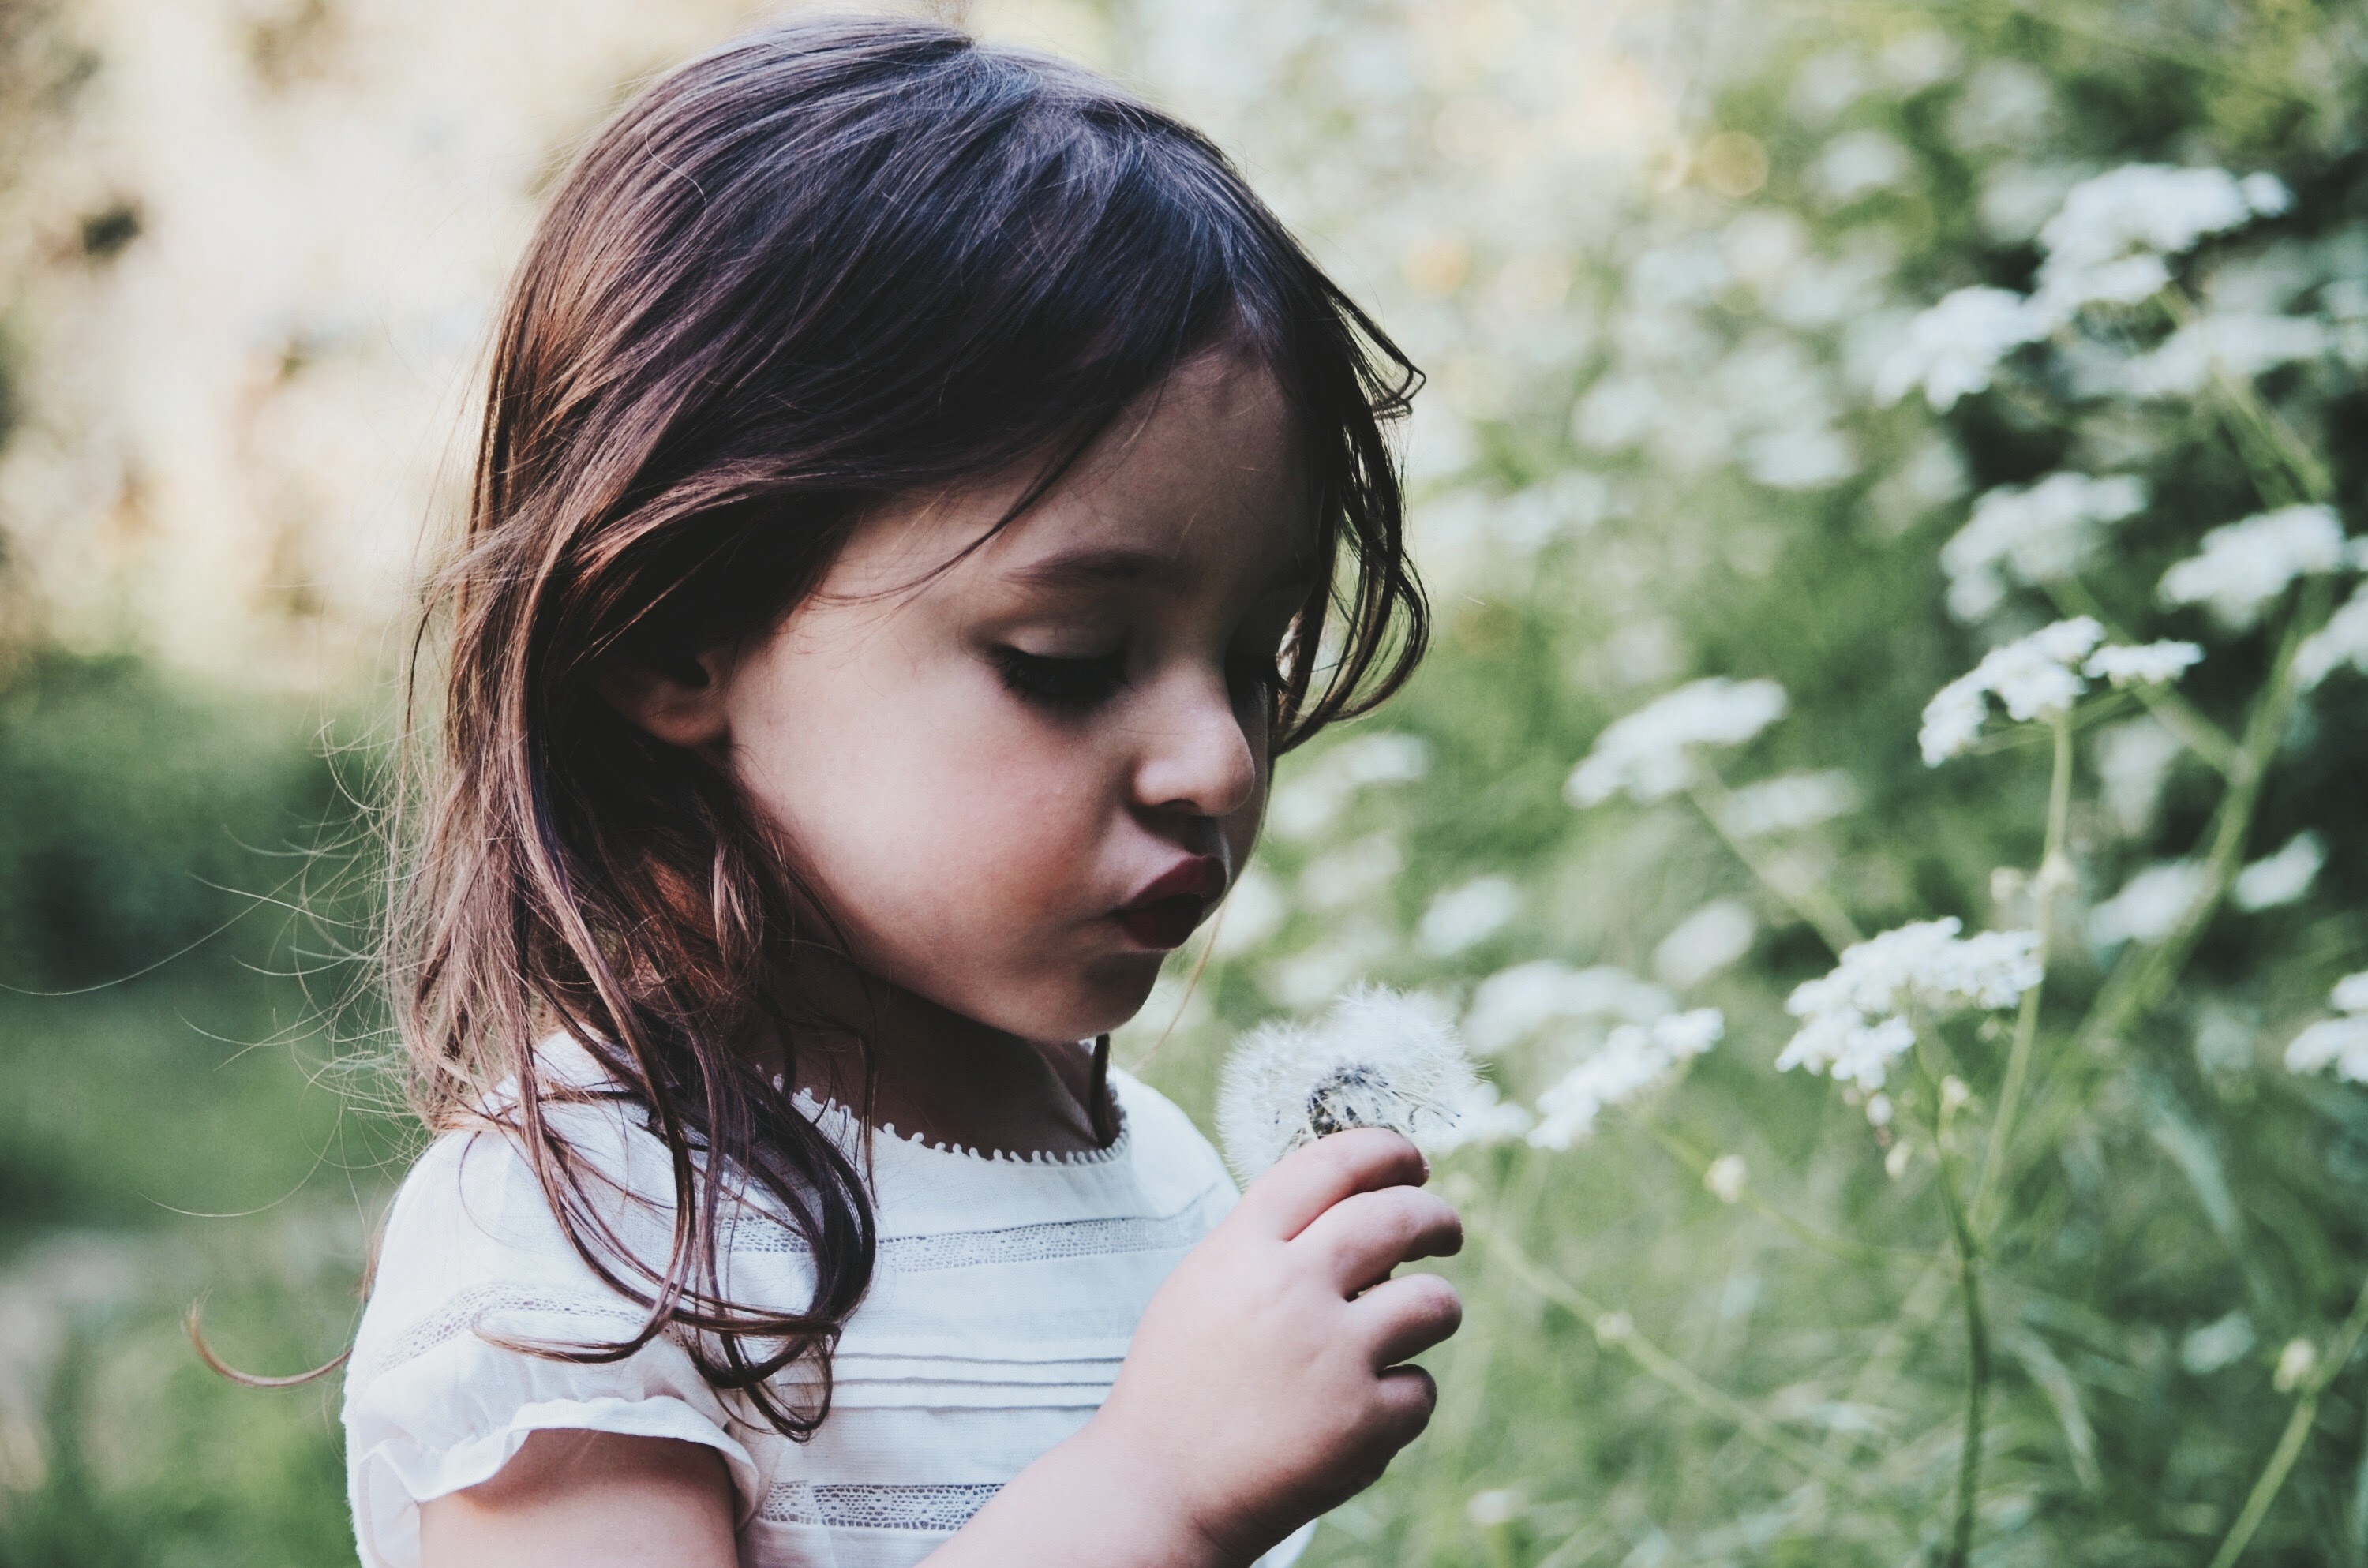 A little girl in a field holding a dandelion with flowers surrounding her